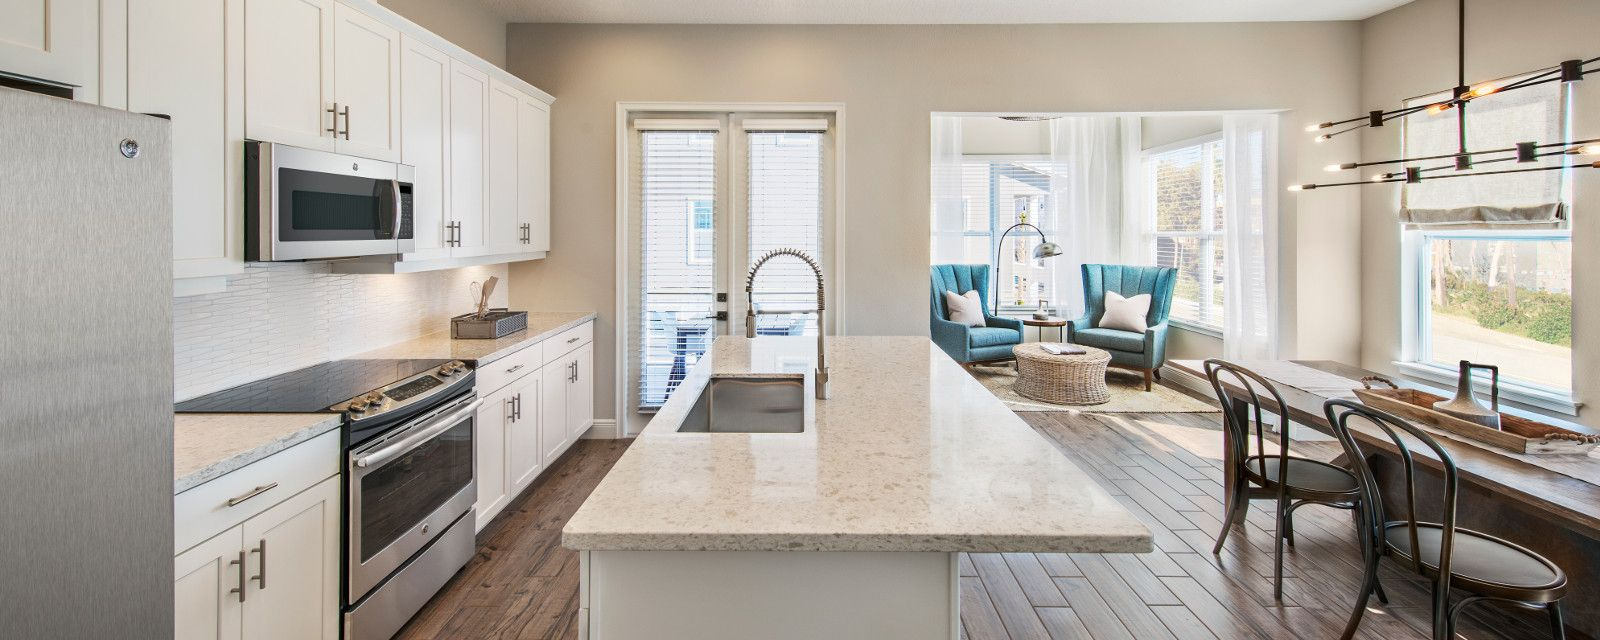 Laureate Park Townhomes by Ashton Woods Homes - DiamondHomesRealty